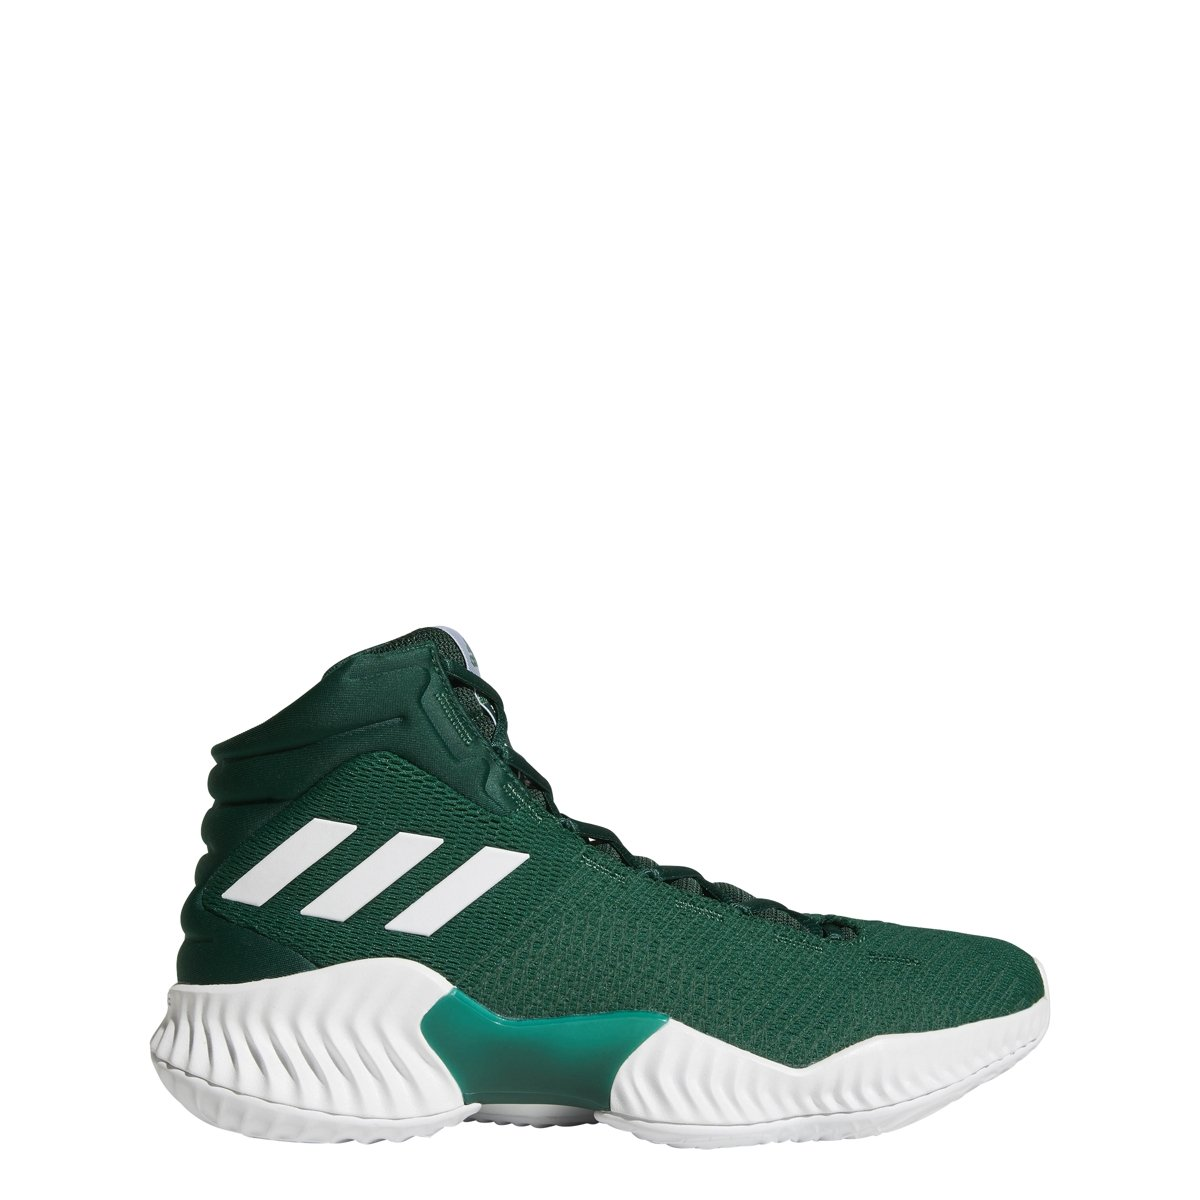 adidas Men's Pro Bounce 2018 Basketball Shoe B077X4KD1Z 13 D(M) US|Dark Green/Dark Green/Dark Green